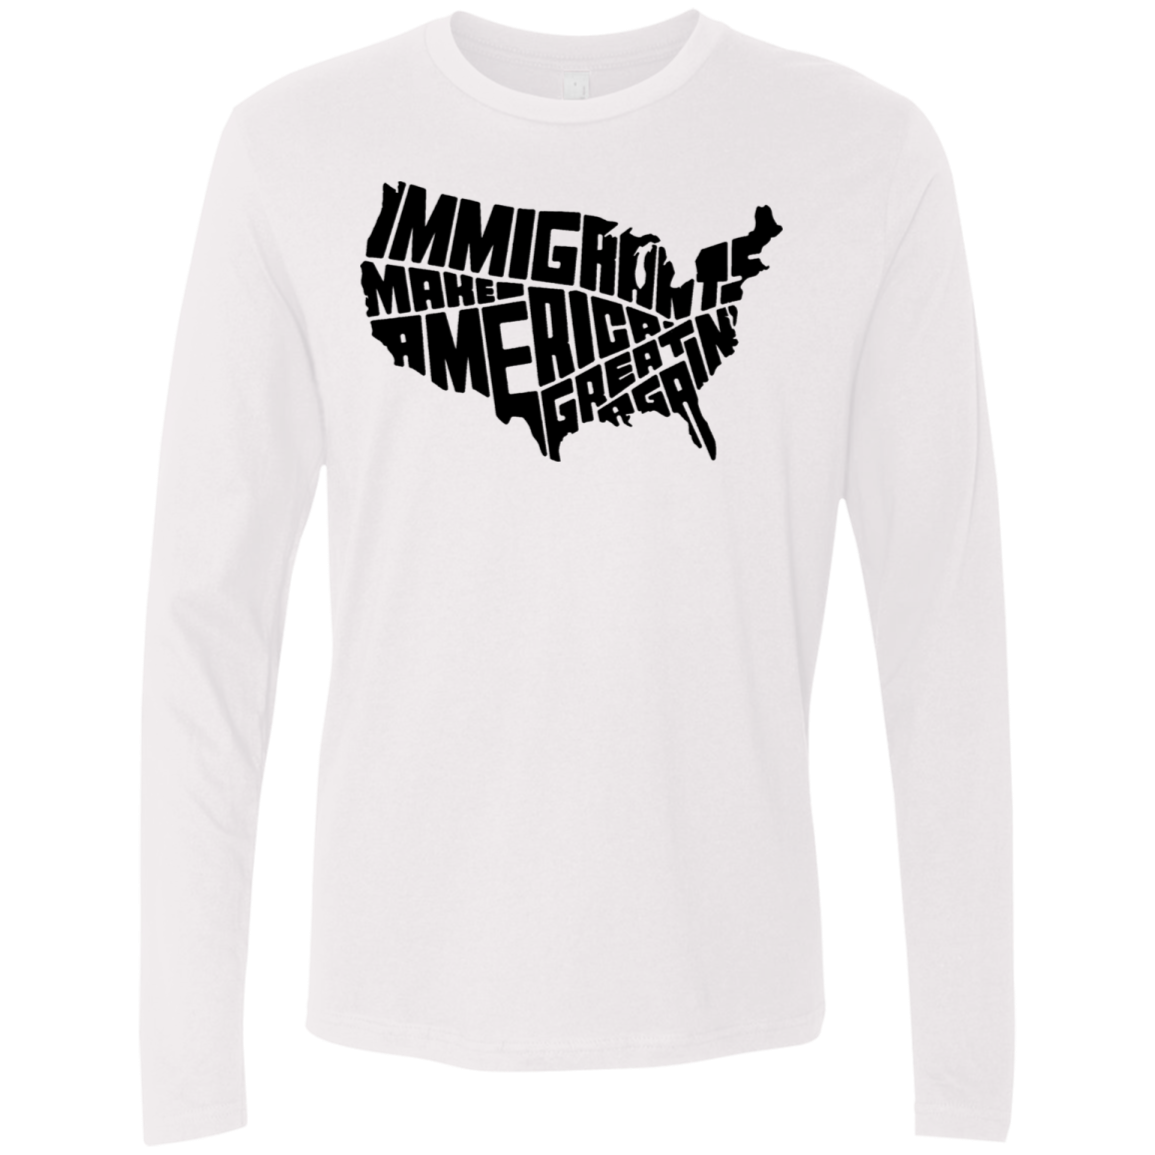 Immigrants Make America Great Again Men's Long Sleeve Tee